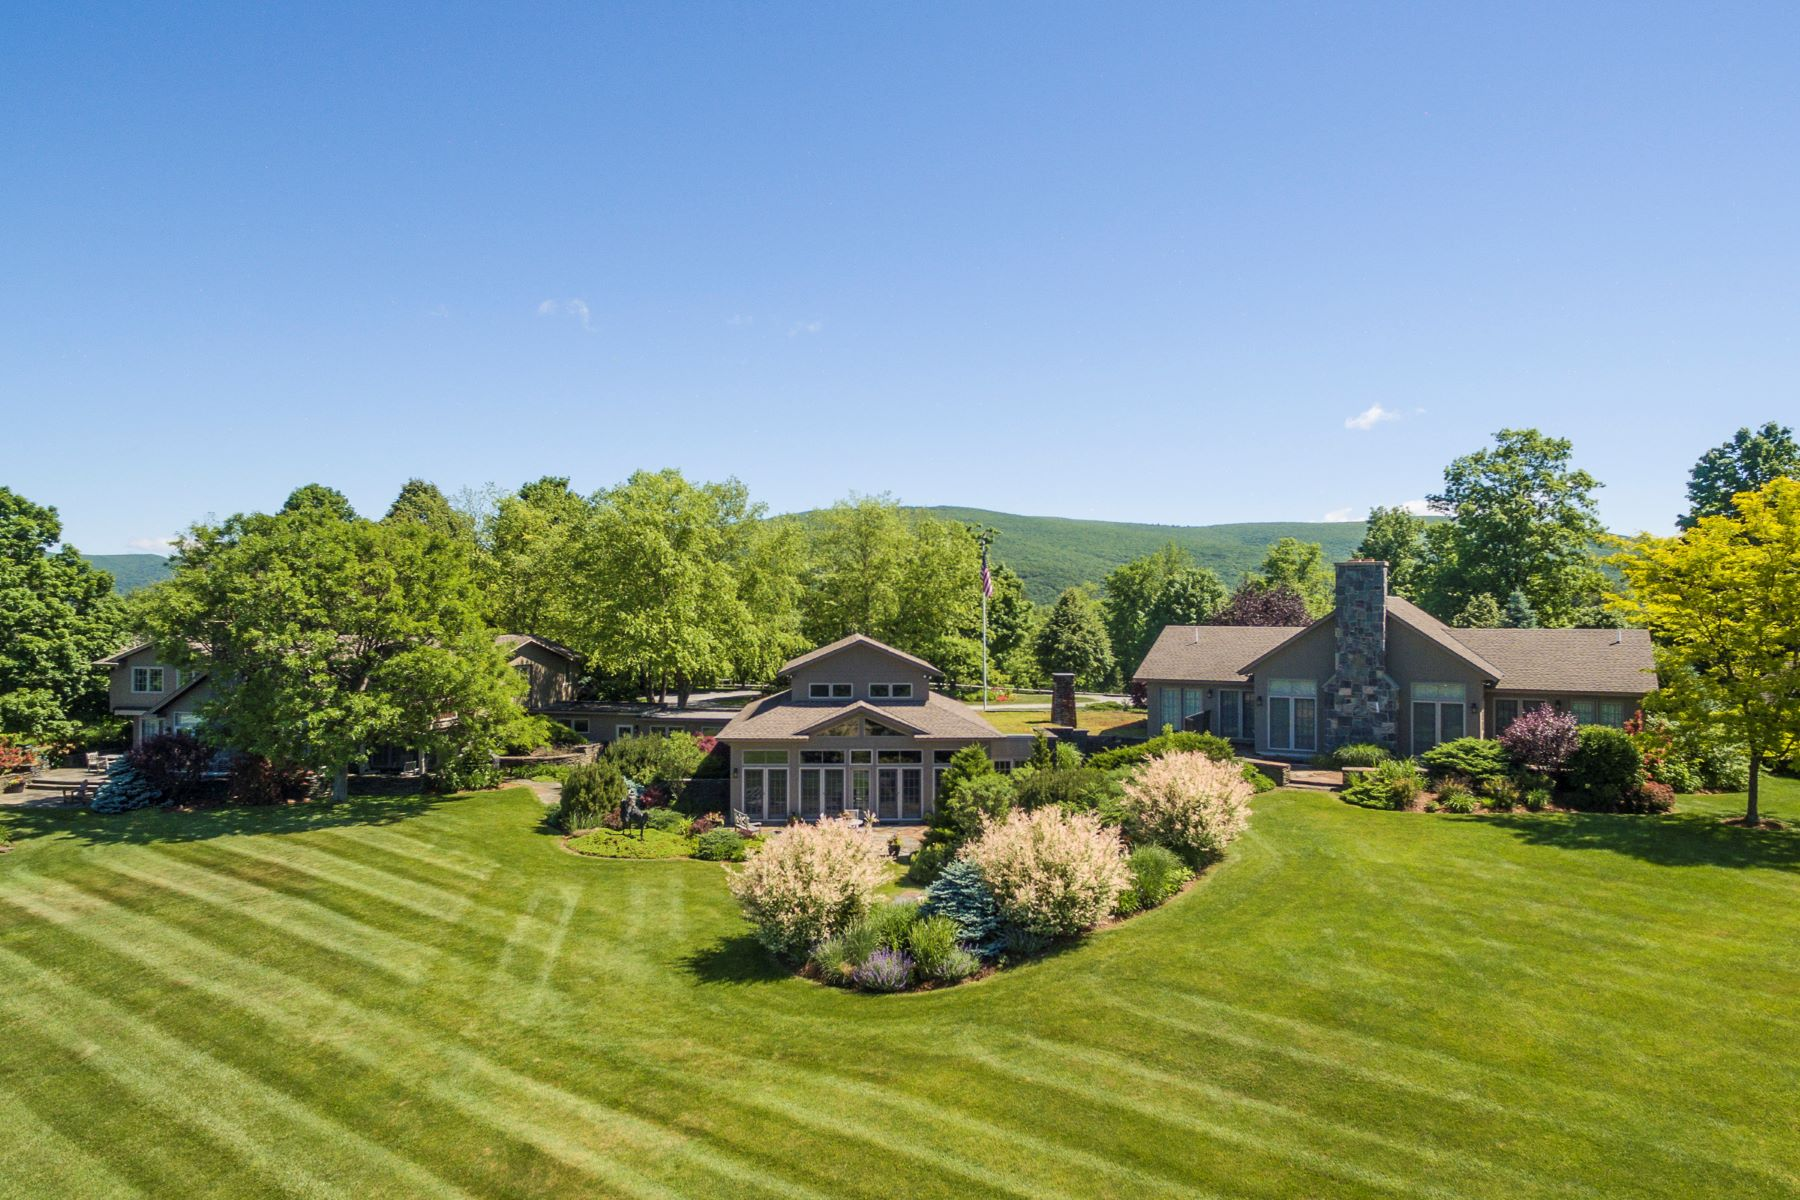 Maison unifamiliale pour l Vente à Live your dream in this stunning 11.7 acre country estate with indoor pool and t 465 Stratton Rd Williamstown, Massachusetts, 01267 États-Unis